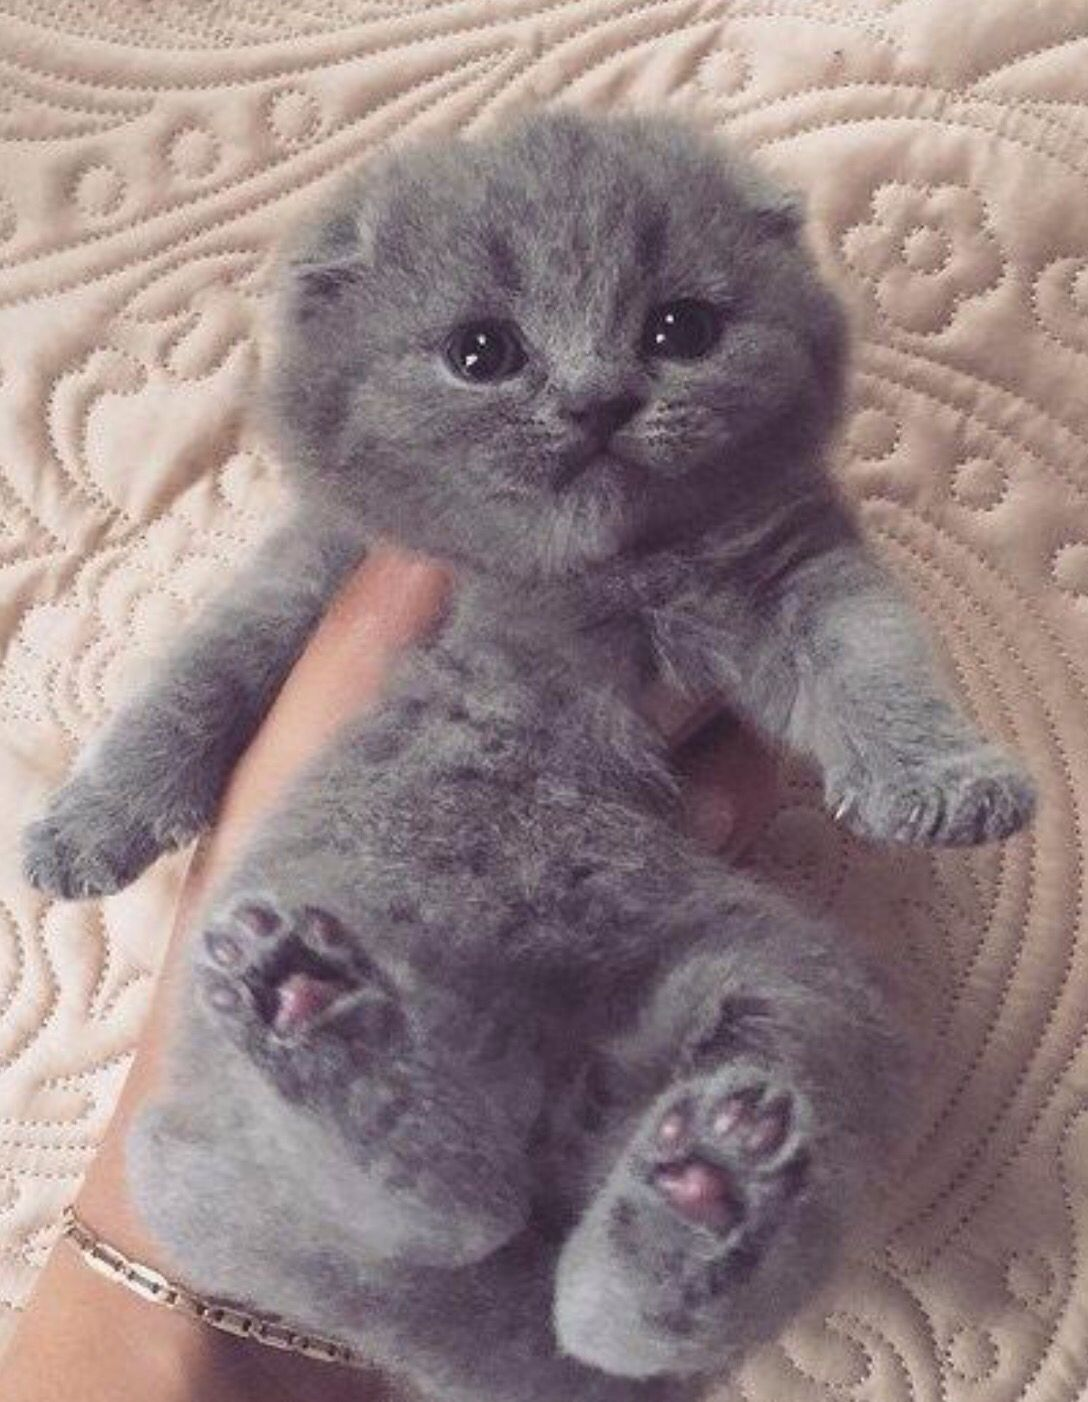 How cute can you get? Picture from Twitter